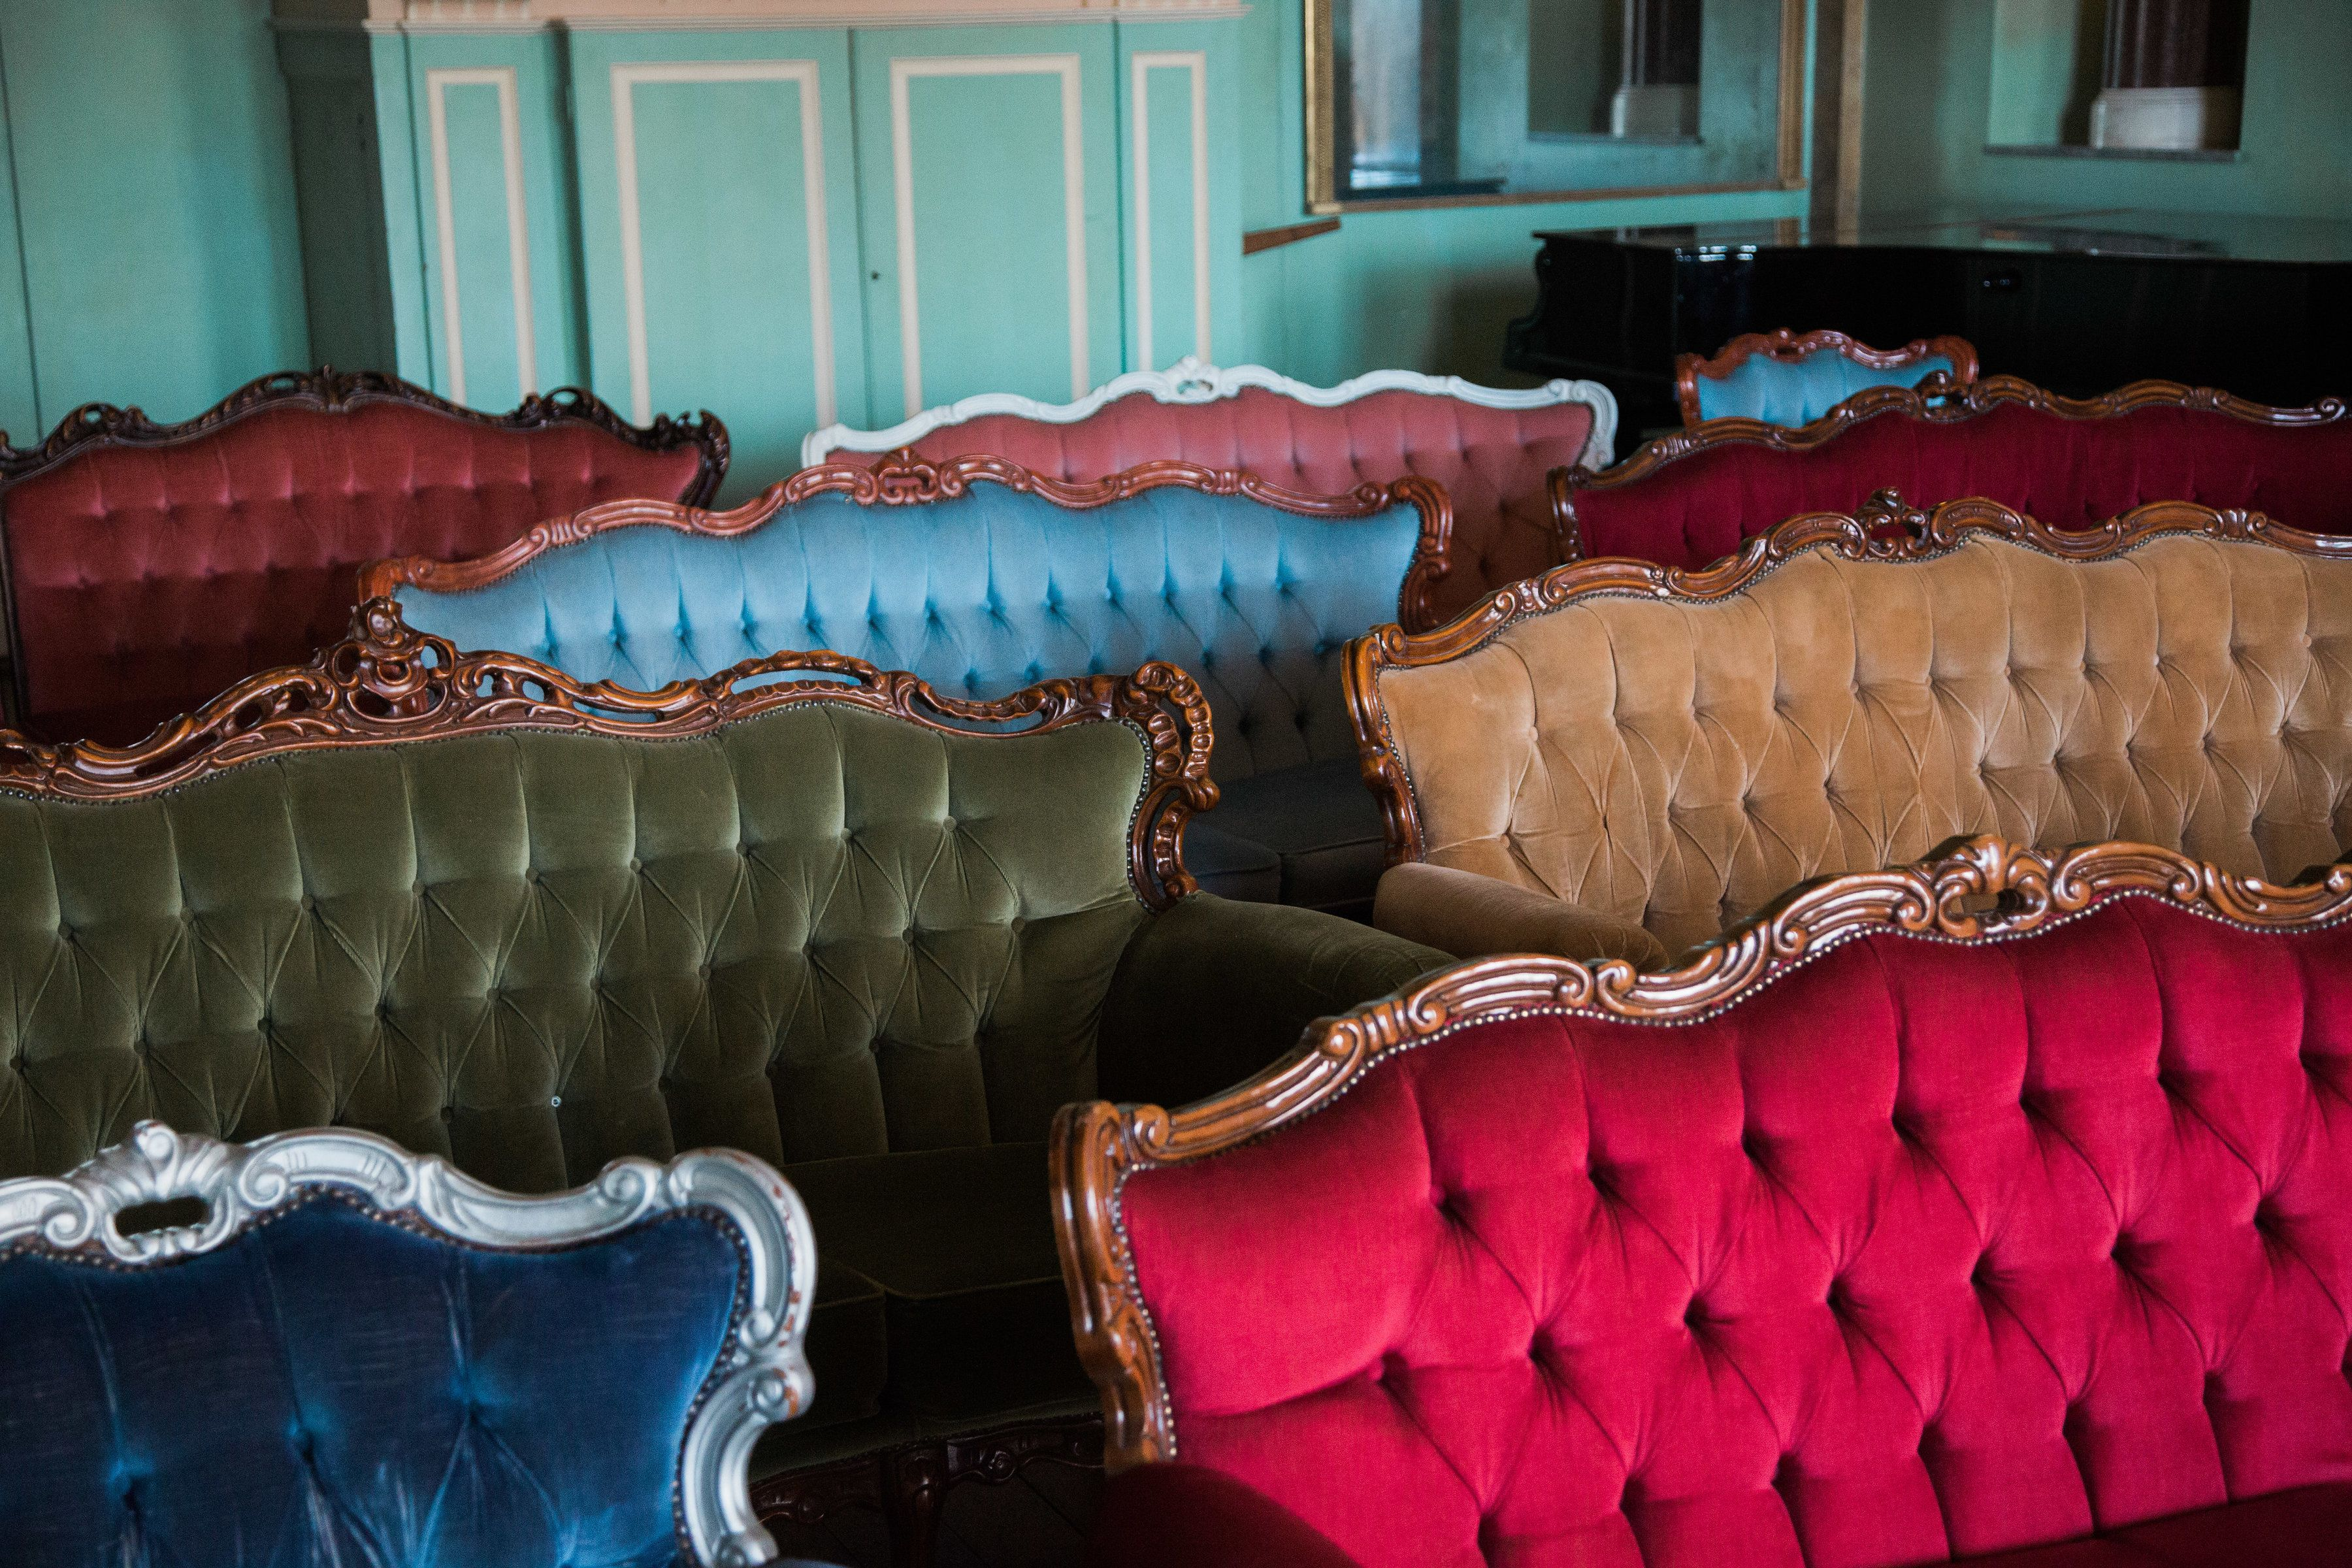 Vintage sofas all in a row at Powderham Castle. Image by